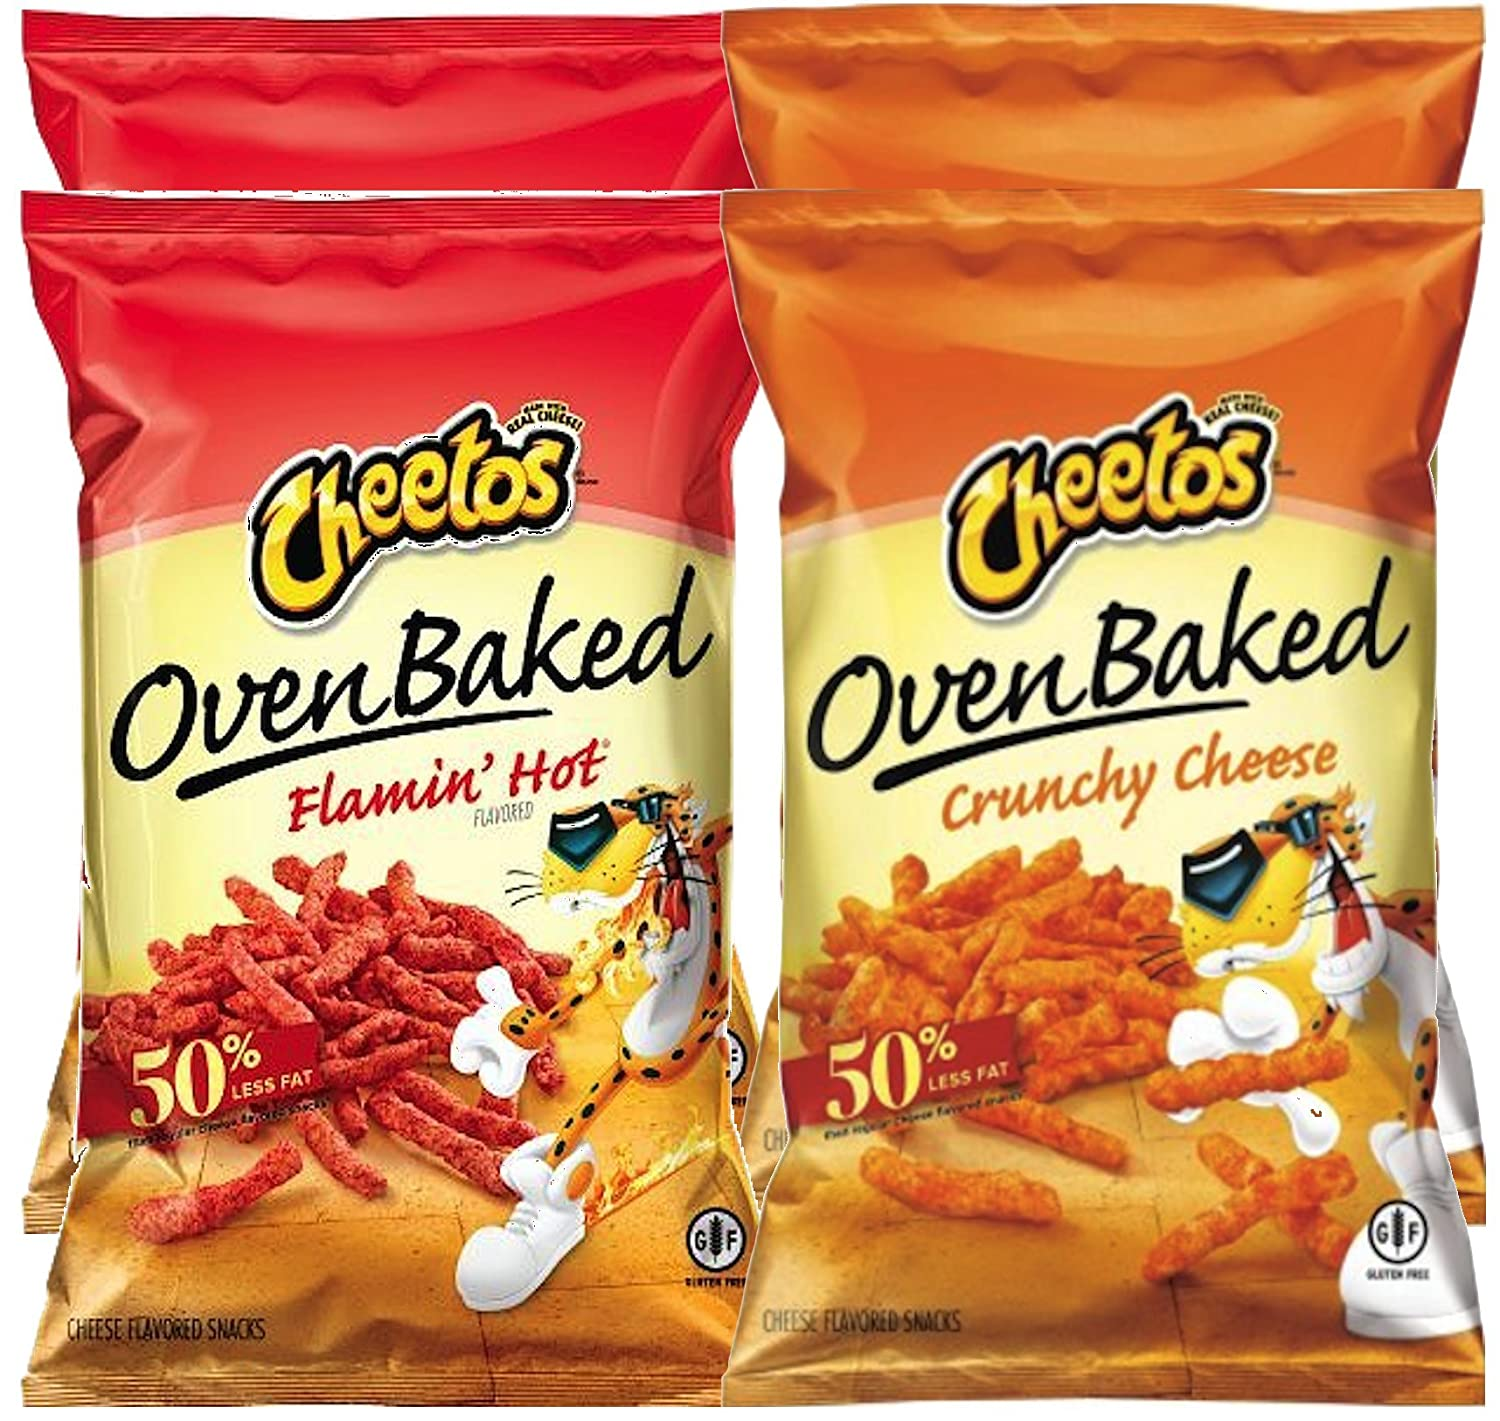 Cheetos Oven Baked Flamin' Hot & Cheetos Oven Baked Crunchy Cheese Gluten Free Snacks 7.63 Oz (pack of 4)